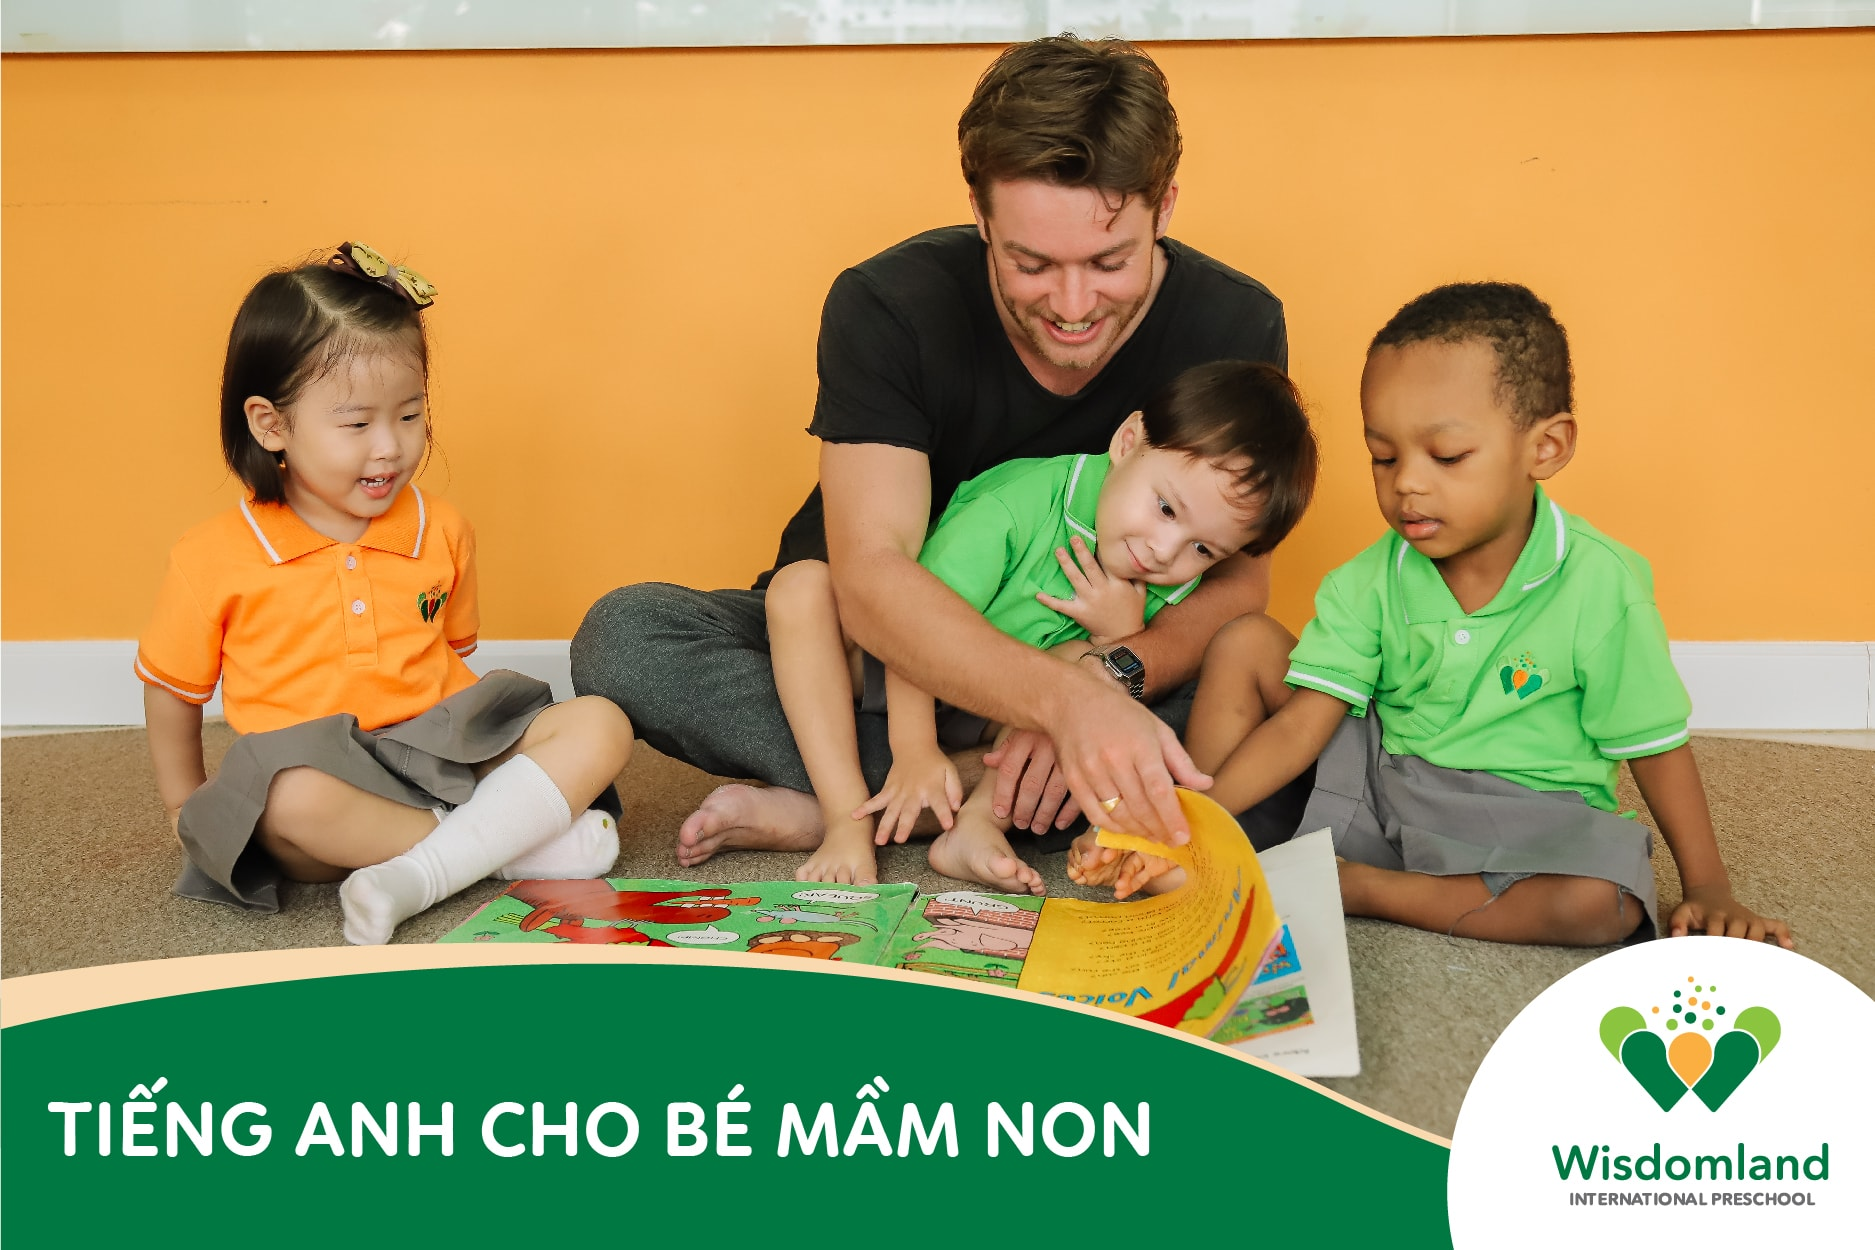 cho tre hoc tieng Anh mam non